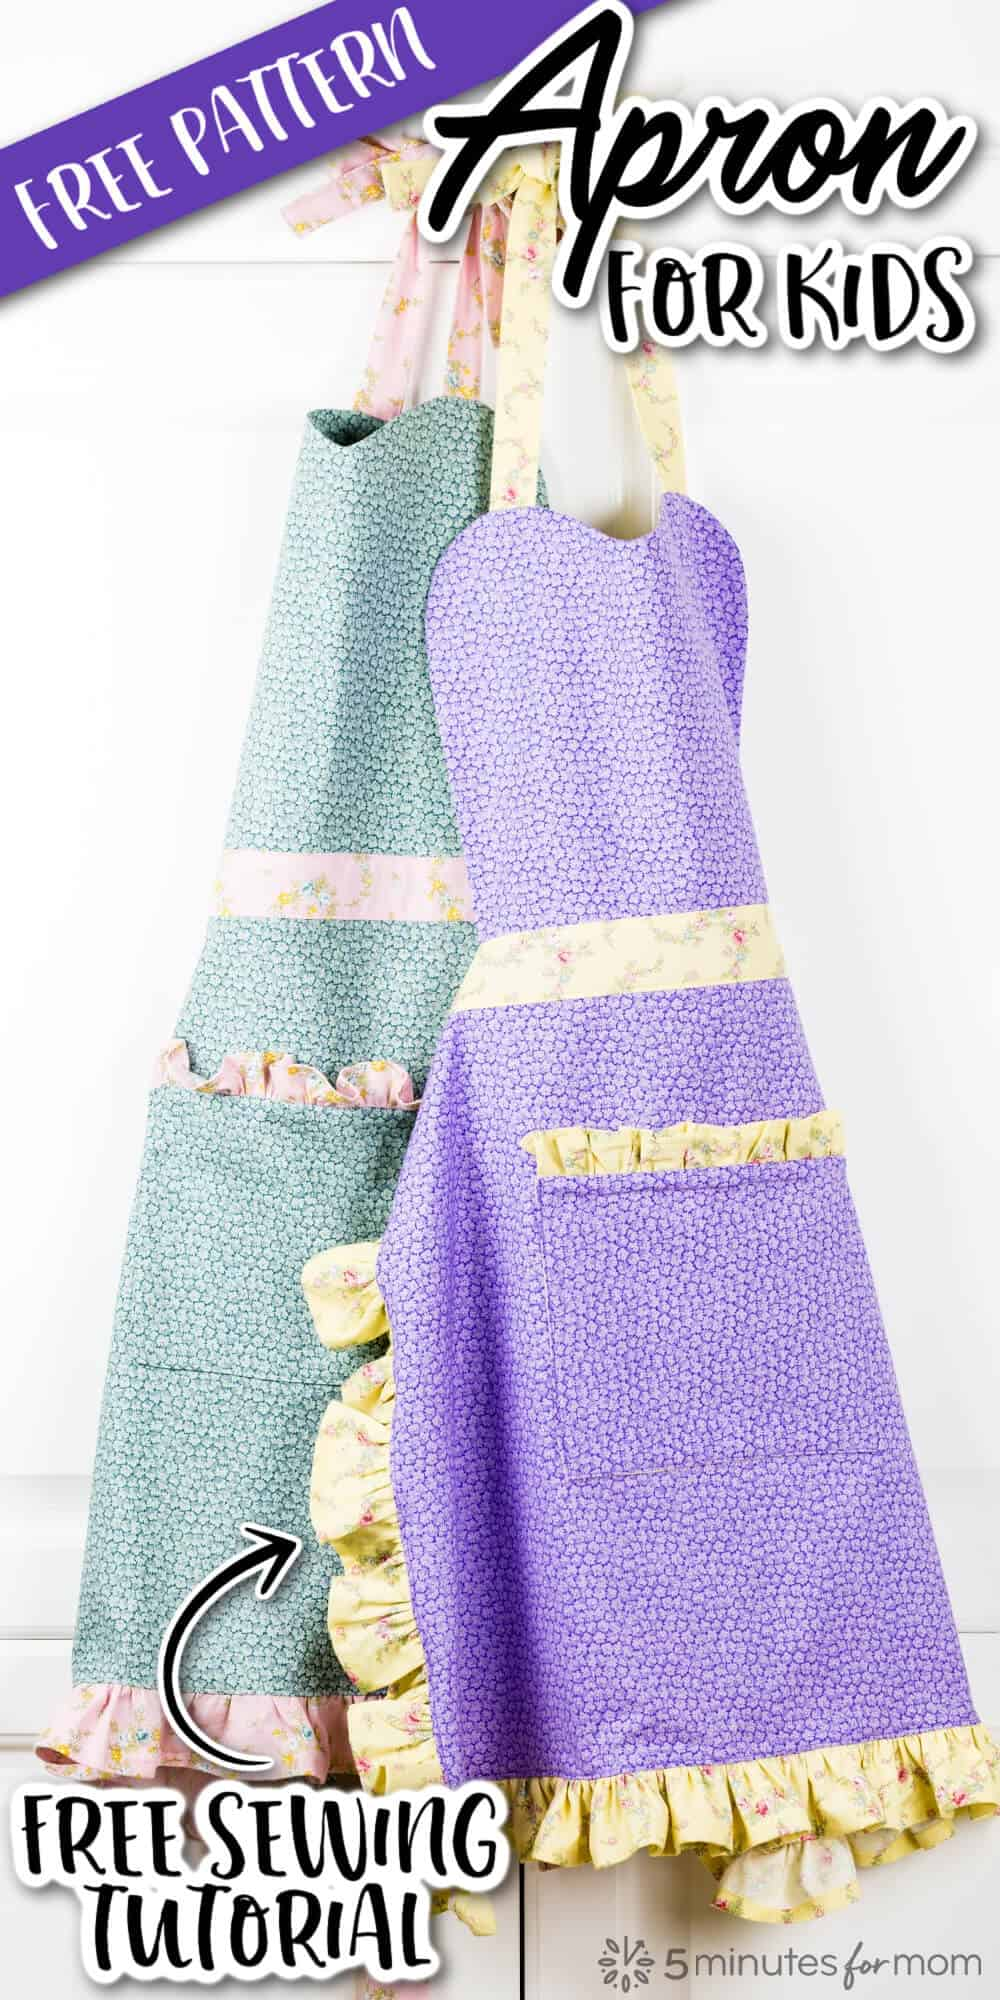 Two Handmade Aprons for Kids made with Floral Print fabrics, one in light green and the other purple. Both aprons have yellow trim. Text on image says Apron for Kids Free Pattern